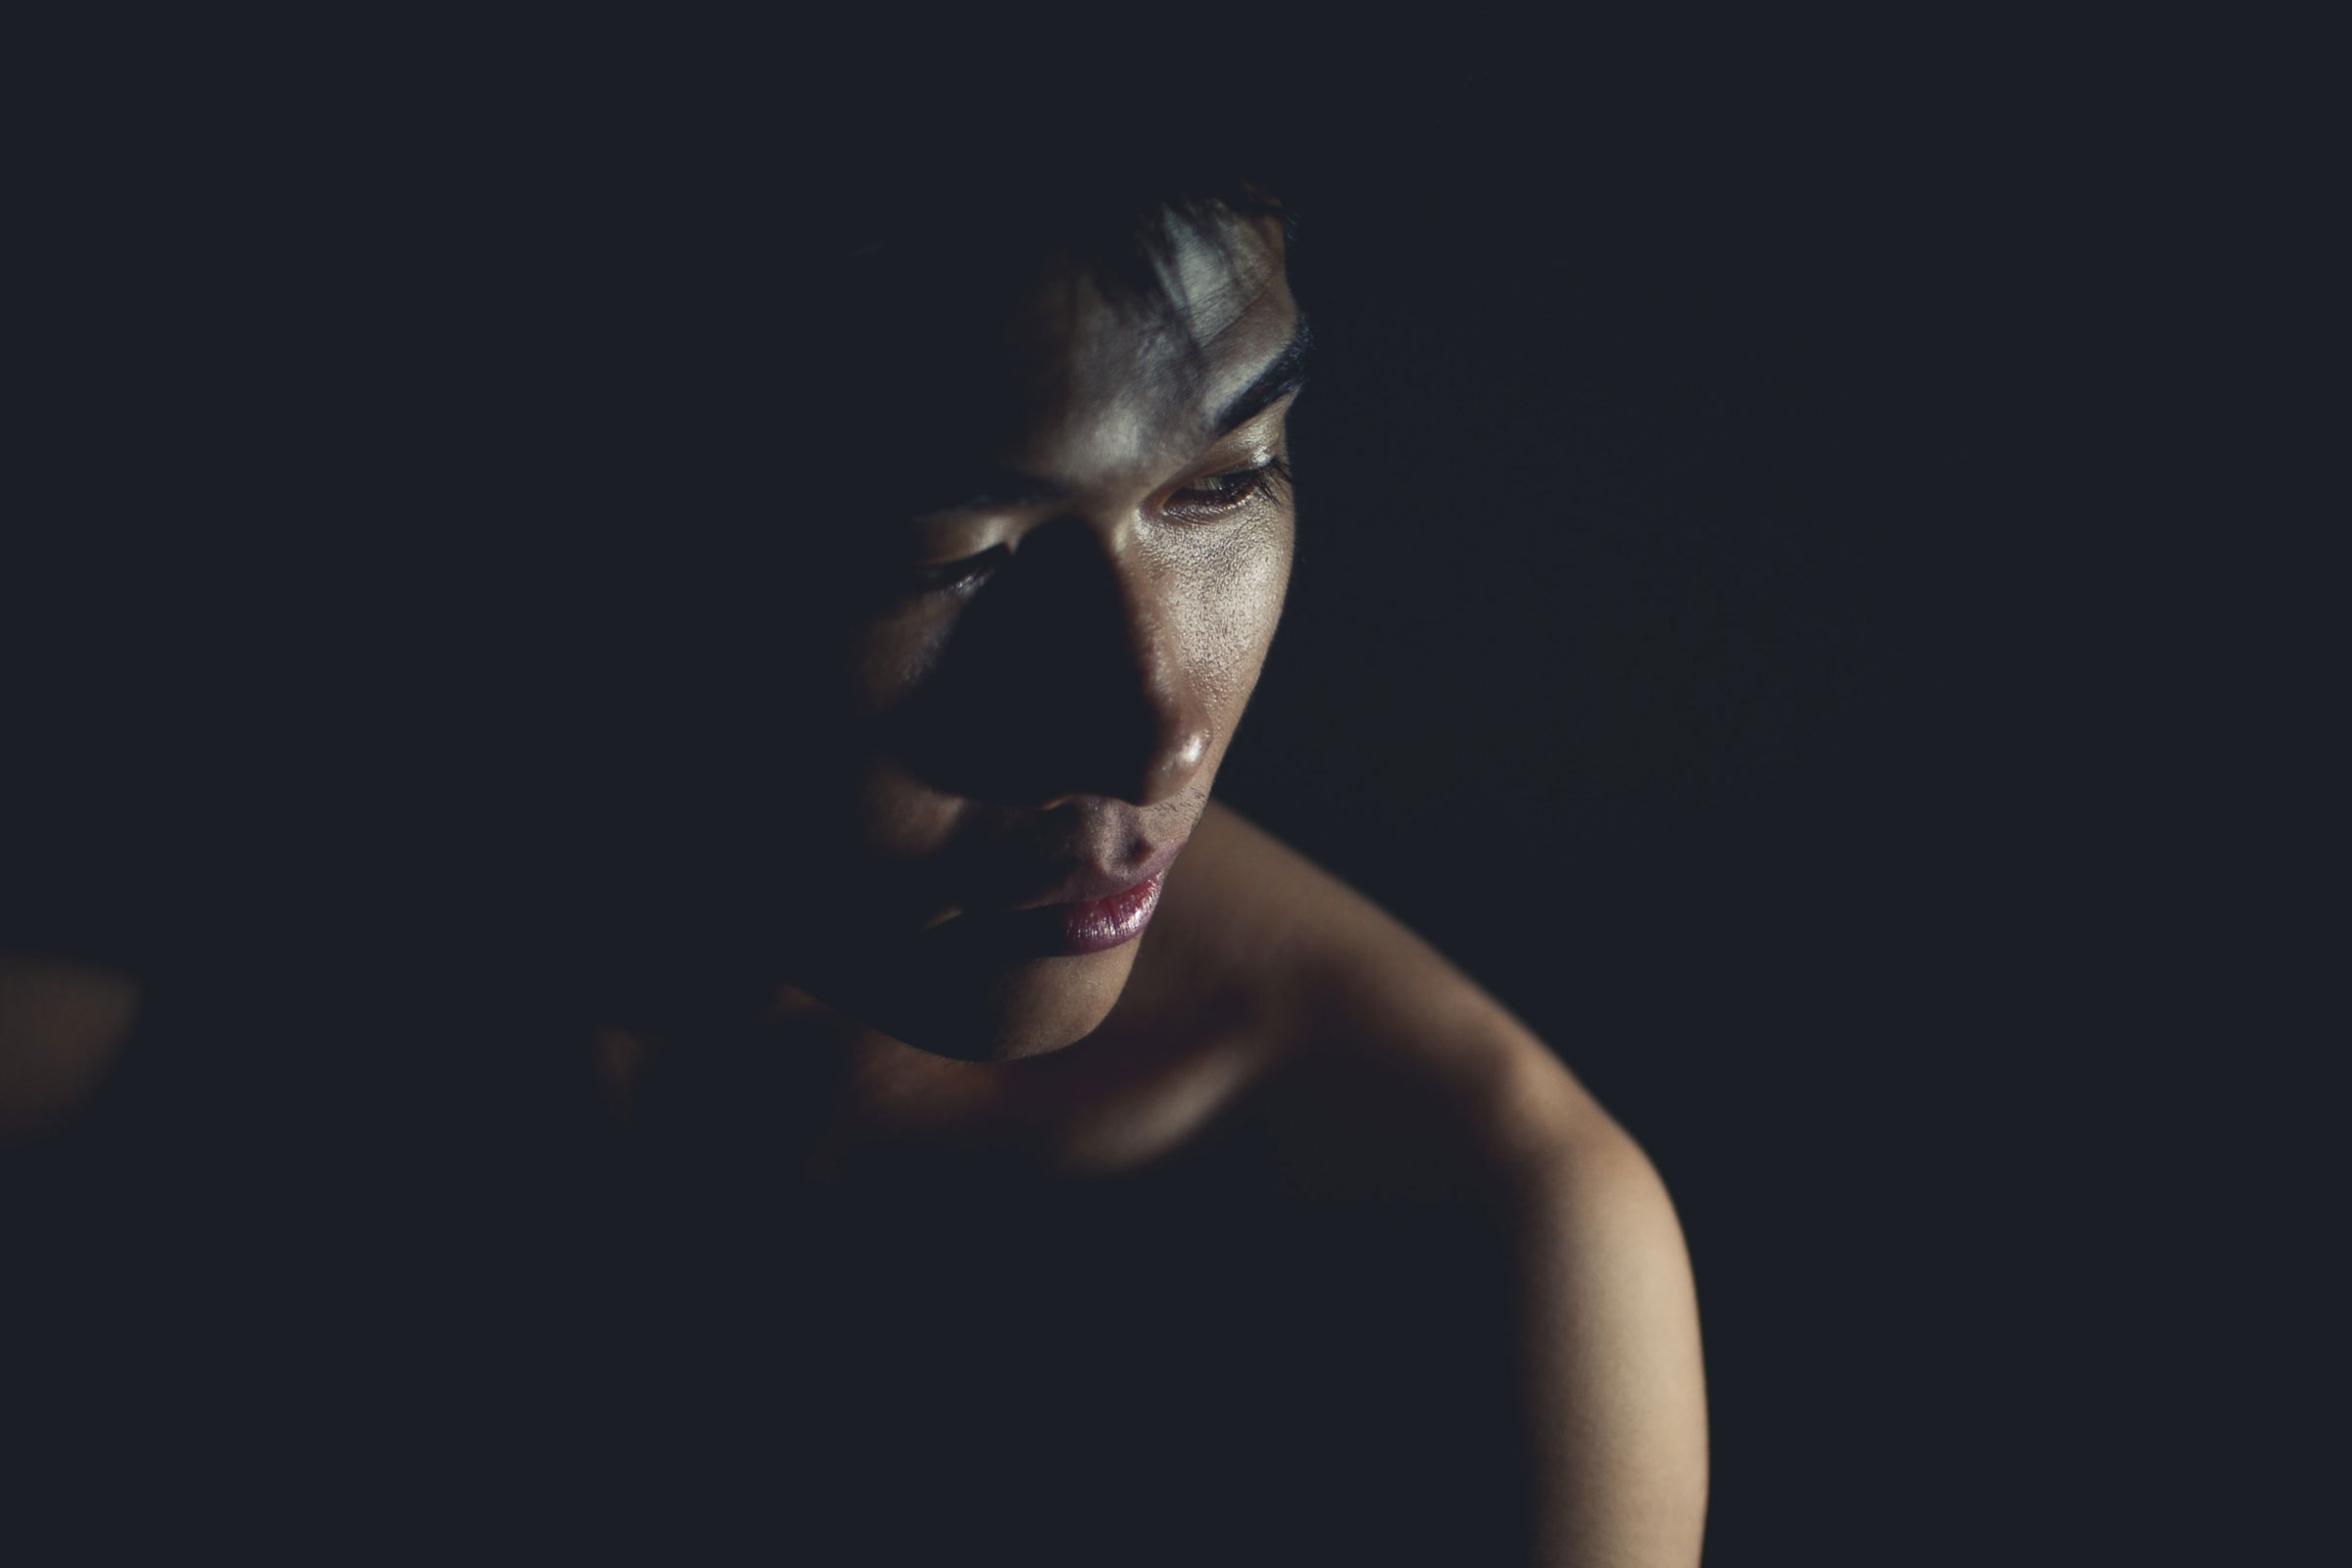 a somber image of an Asian person shrouded in darkness and looking away from the camera